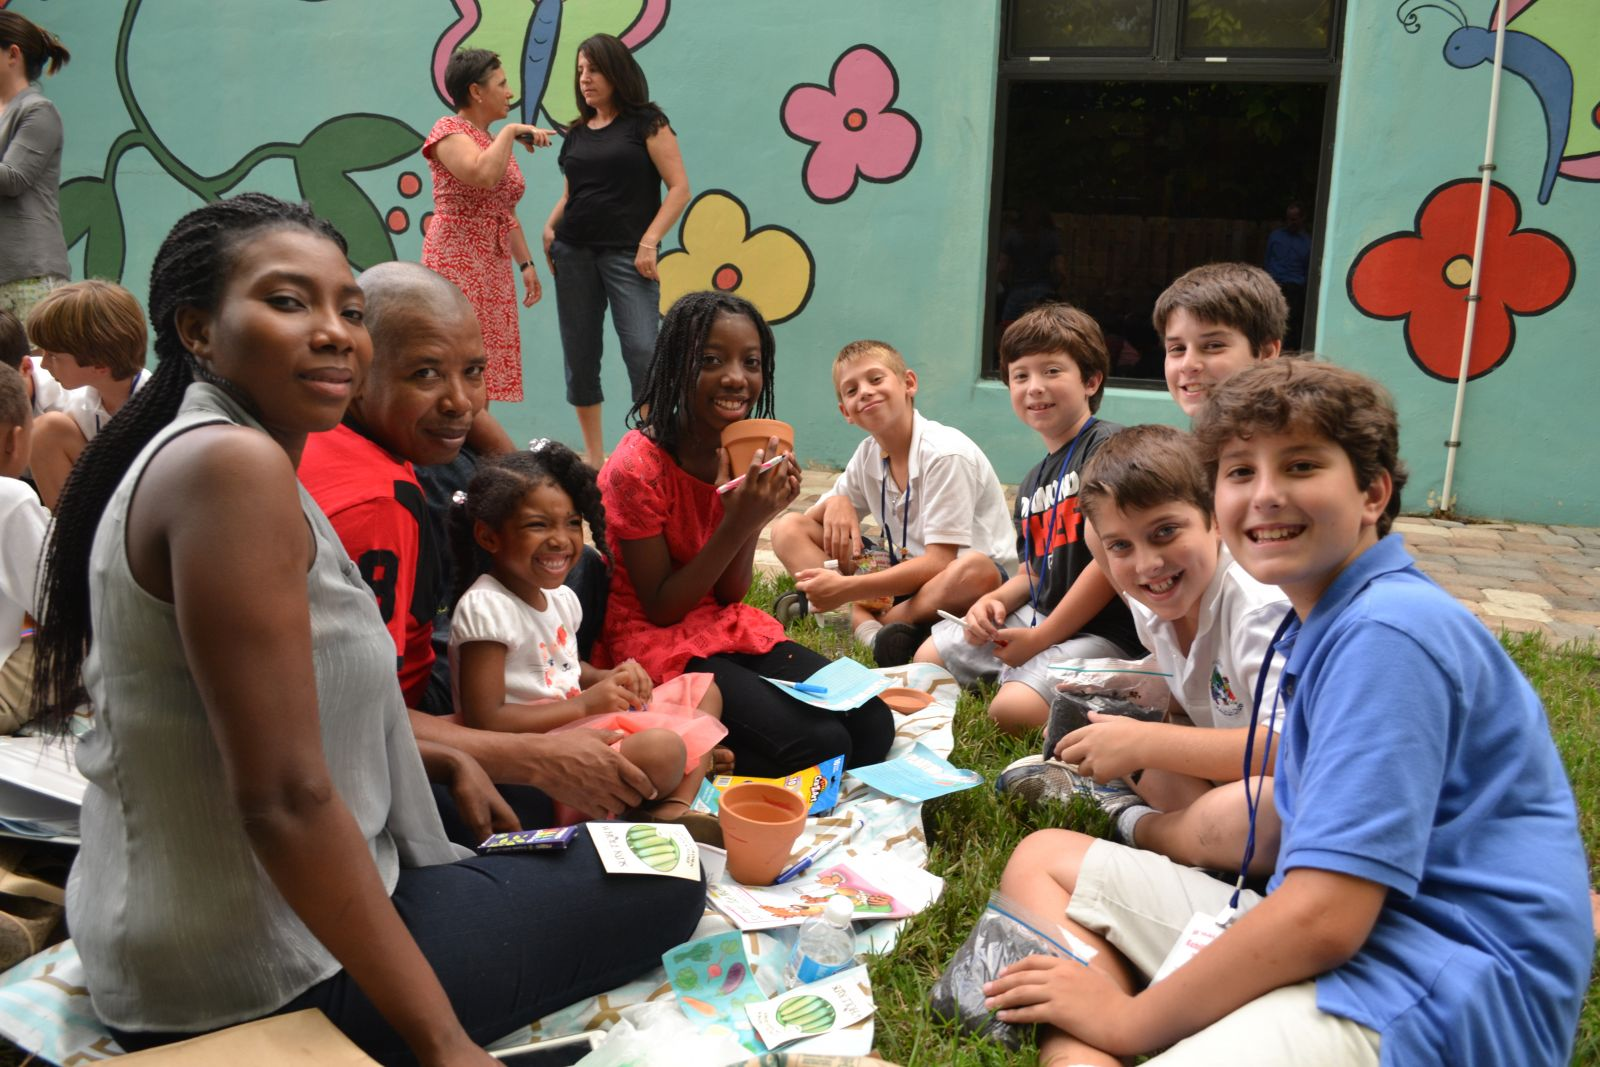 How To Teach Kids About Community Service